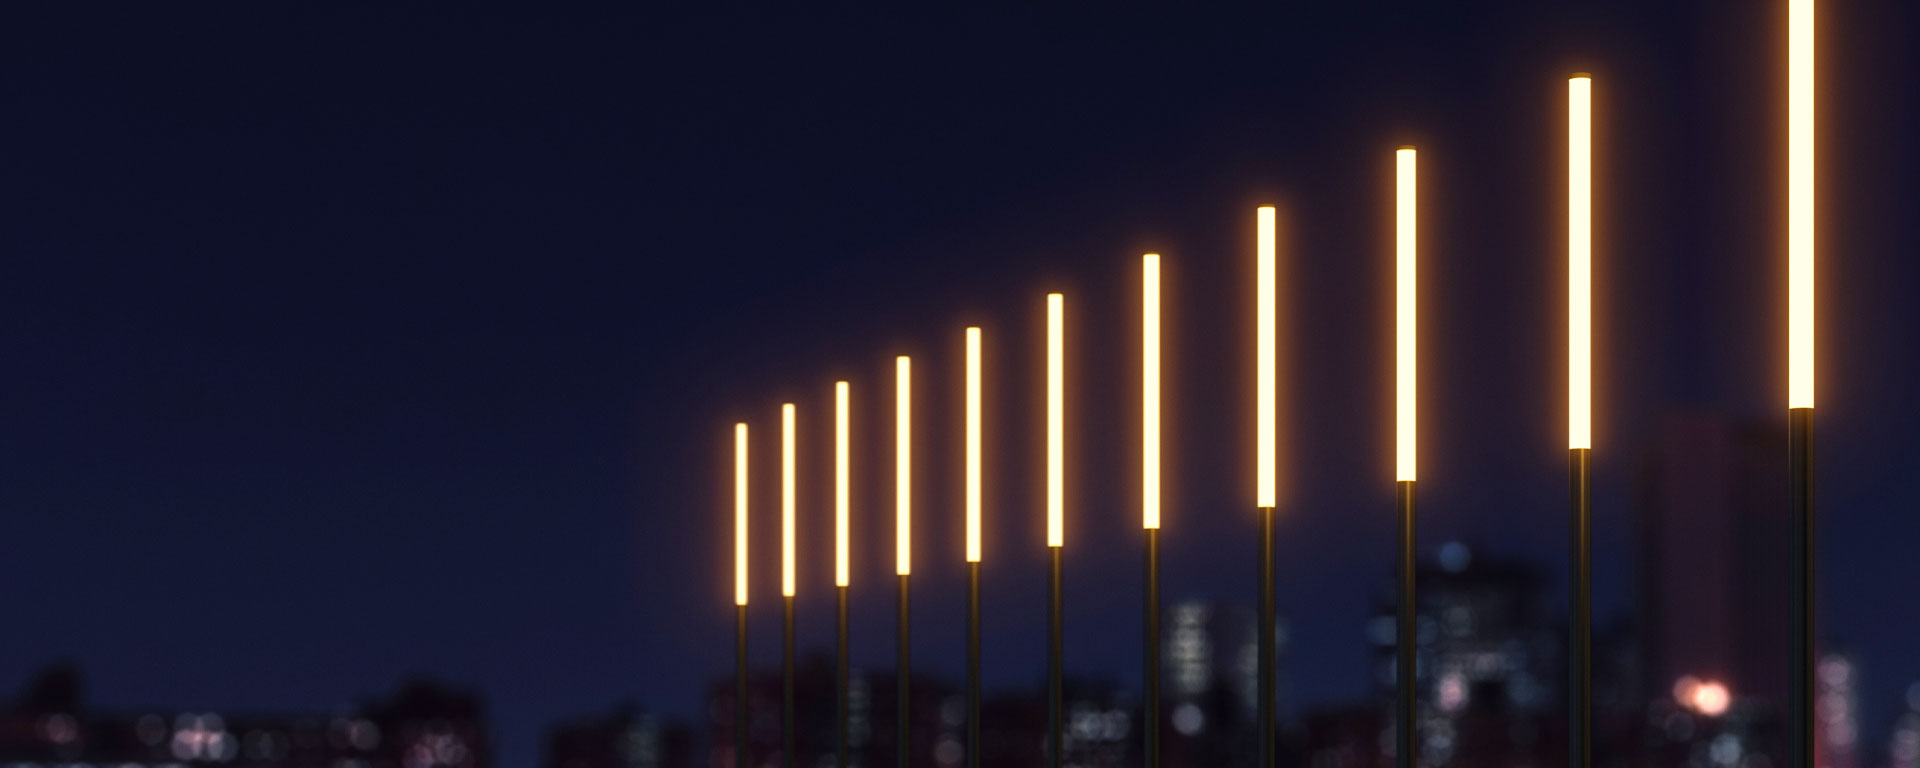 Liverpool is a fully illuminated pole-top light column available in four length options and a range of colour temperatures